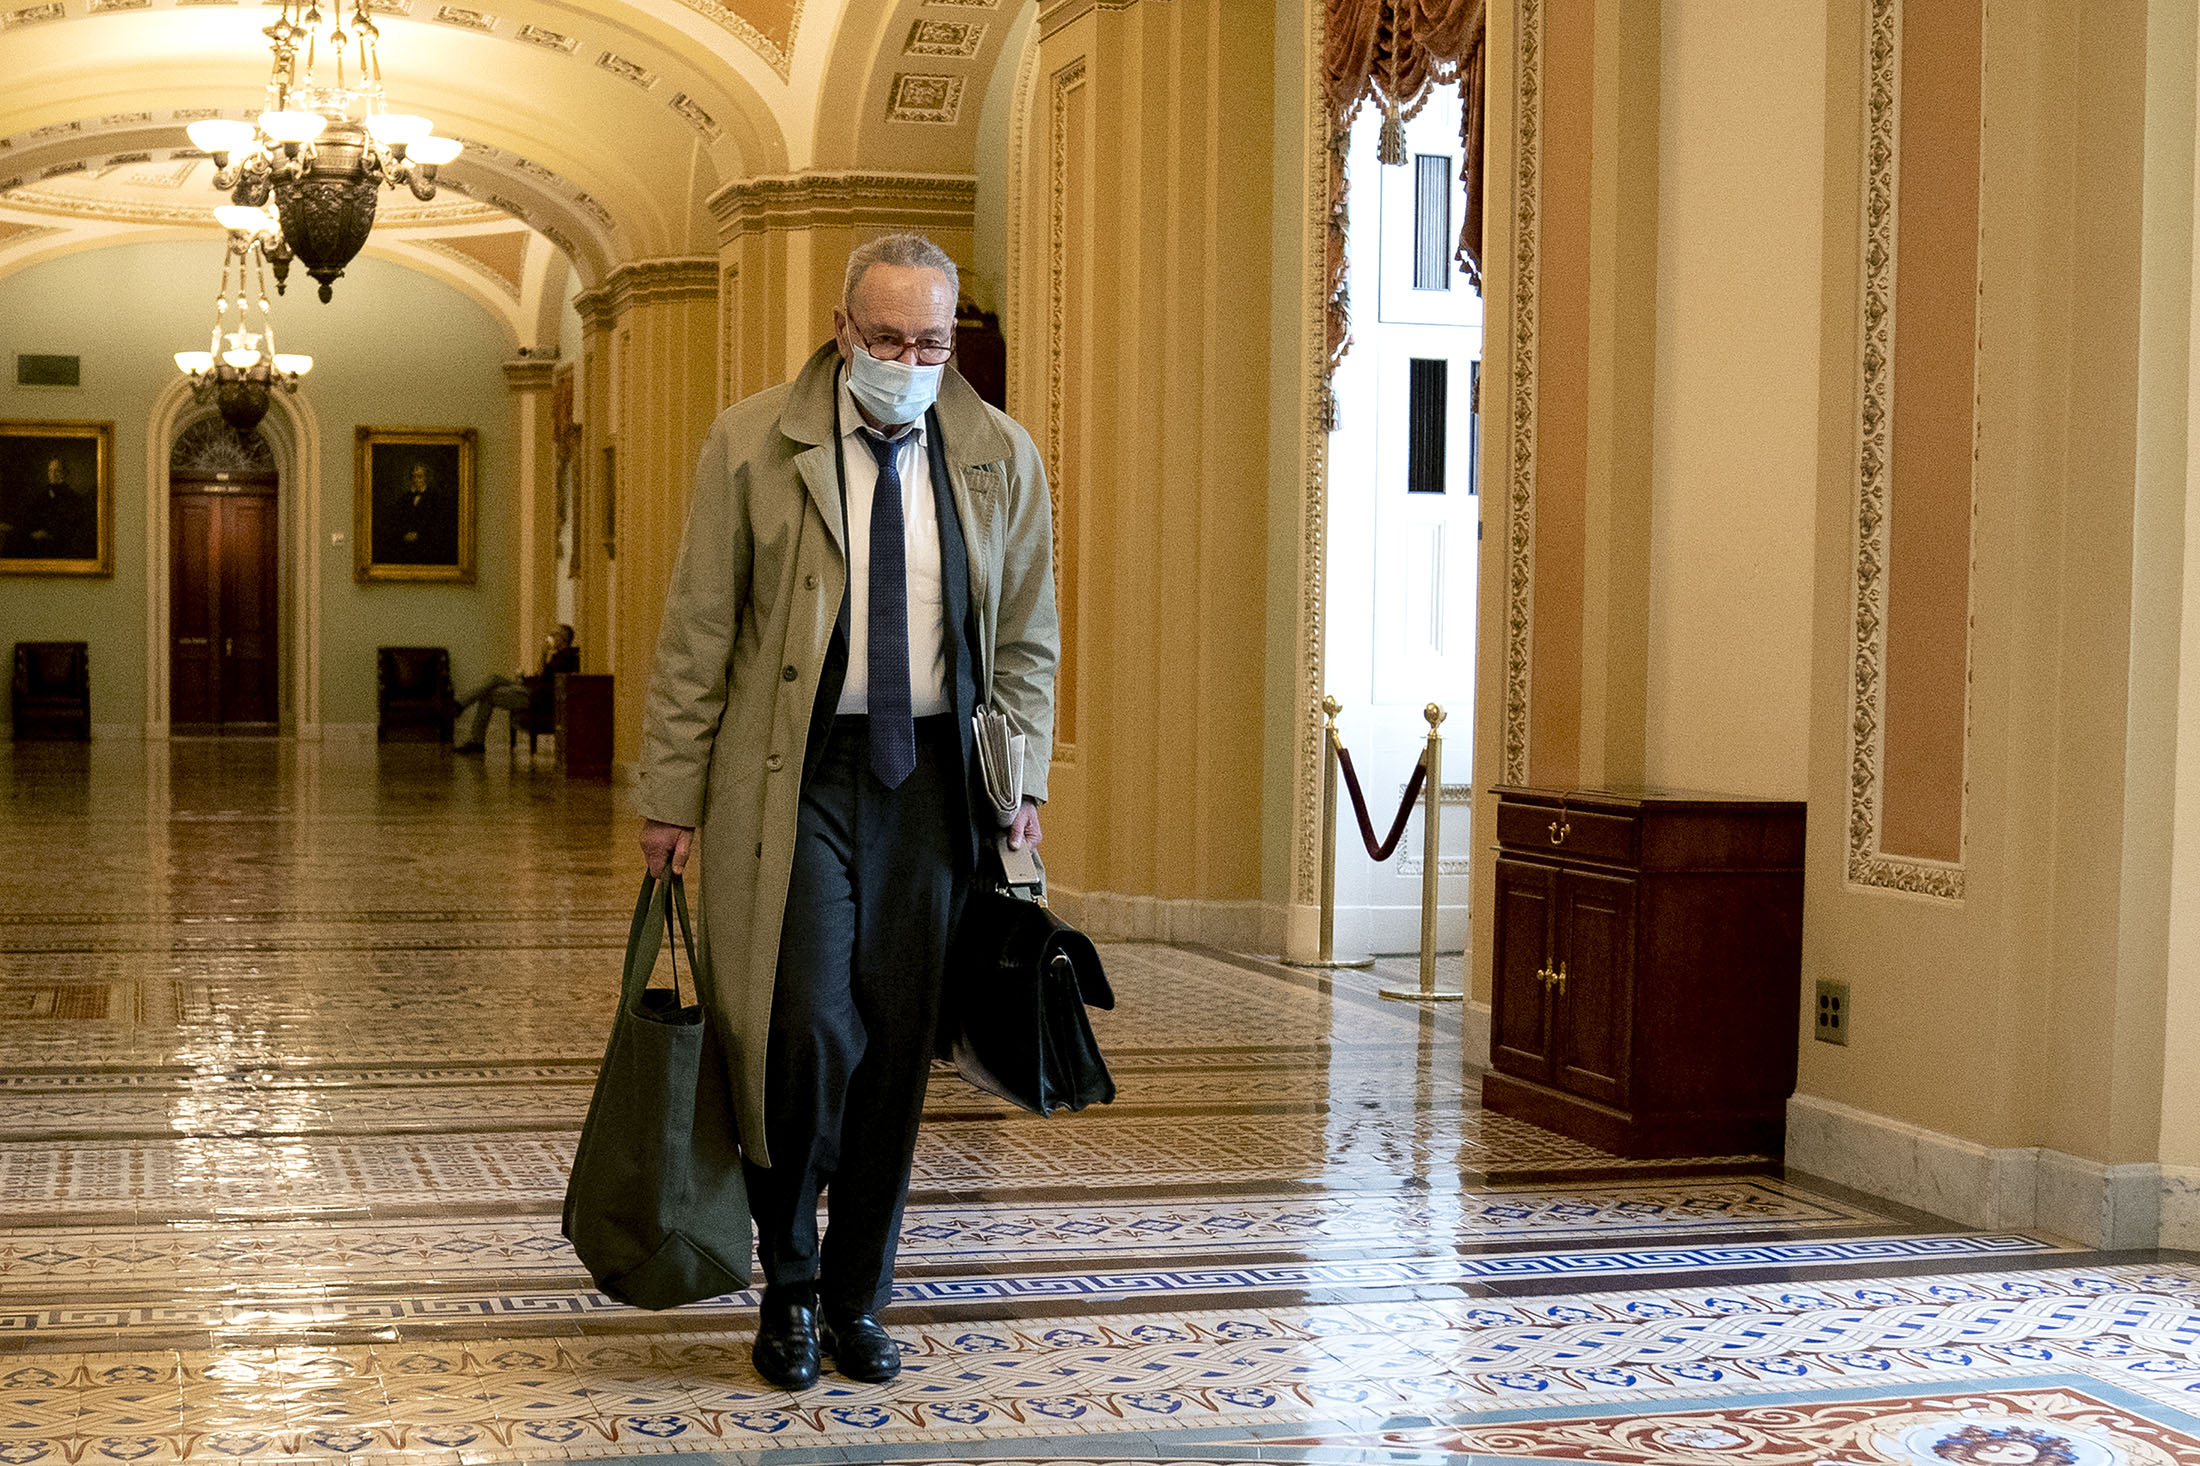 Senate Minority Leader Chuck Schumer wears a protective mask while arriving at the U.S. Capitol in Washington DC, on Monday, November 30, 2020.